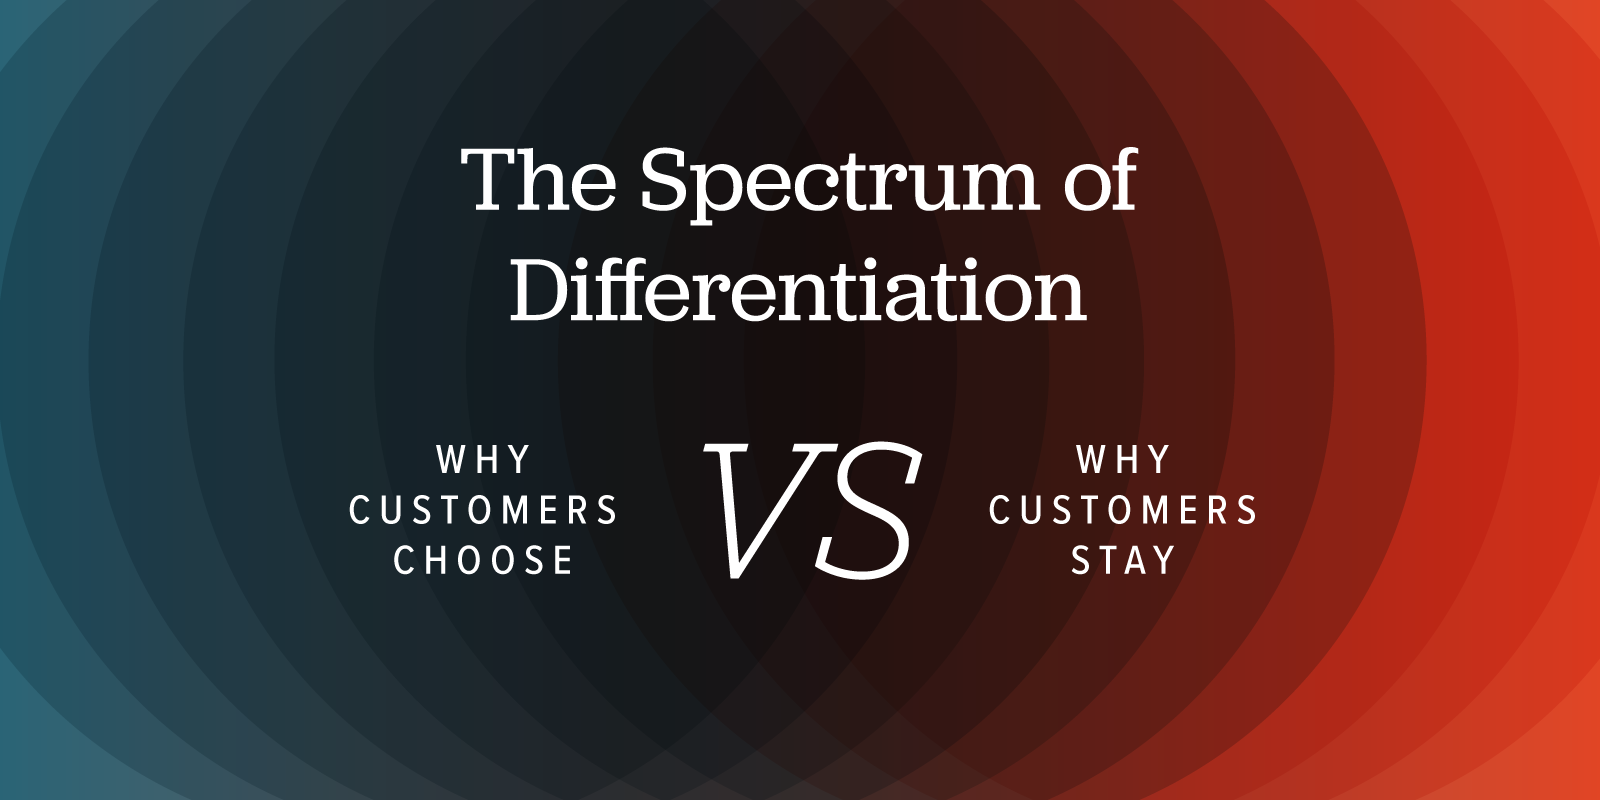 The Spectrum of Differentiation: Why customers choose versus why customers stay